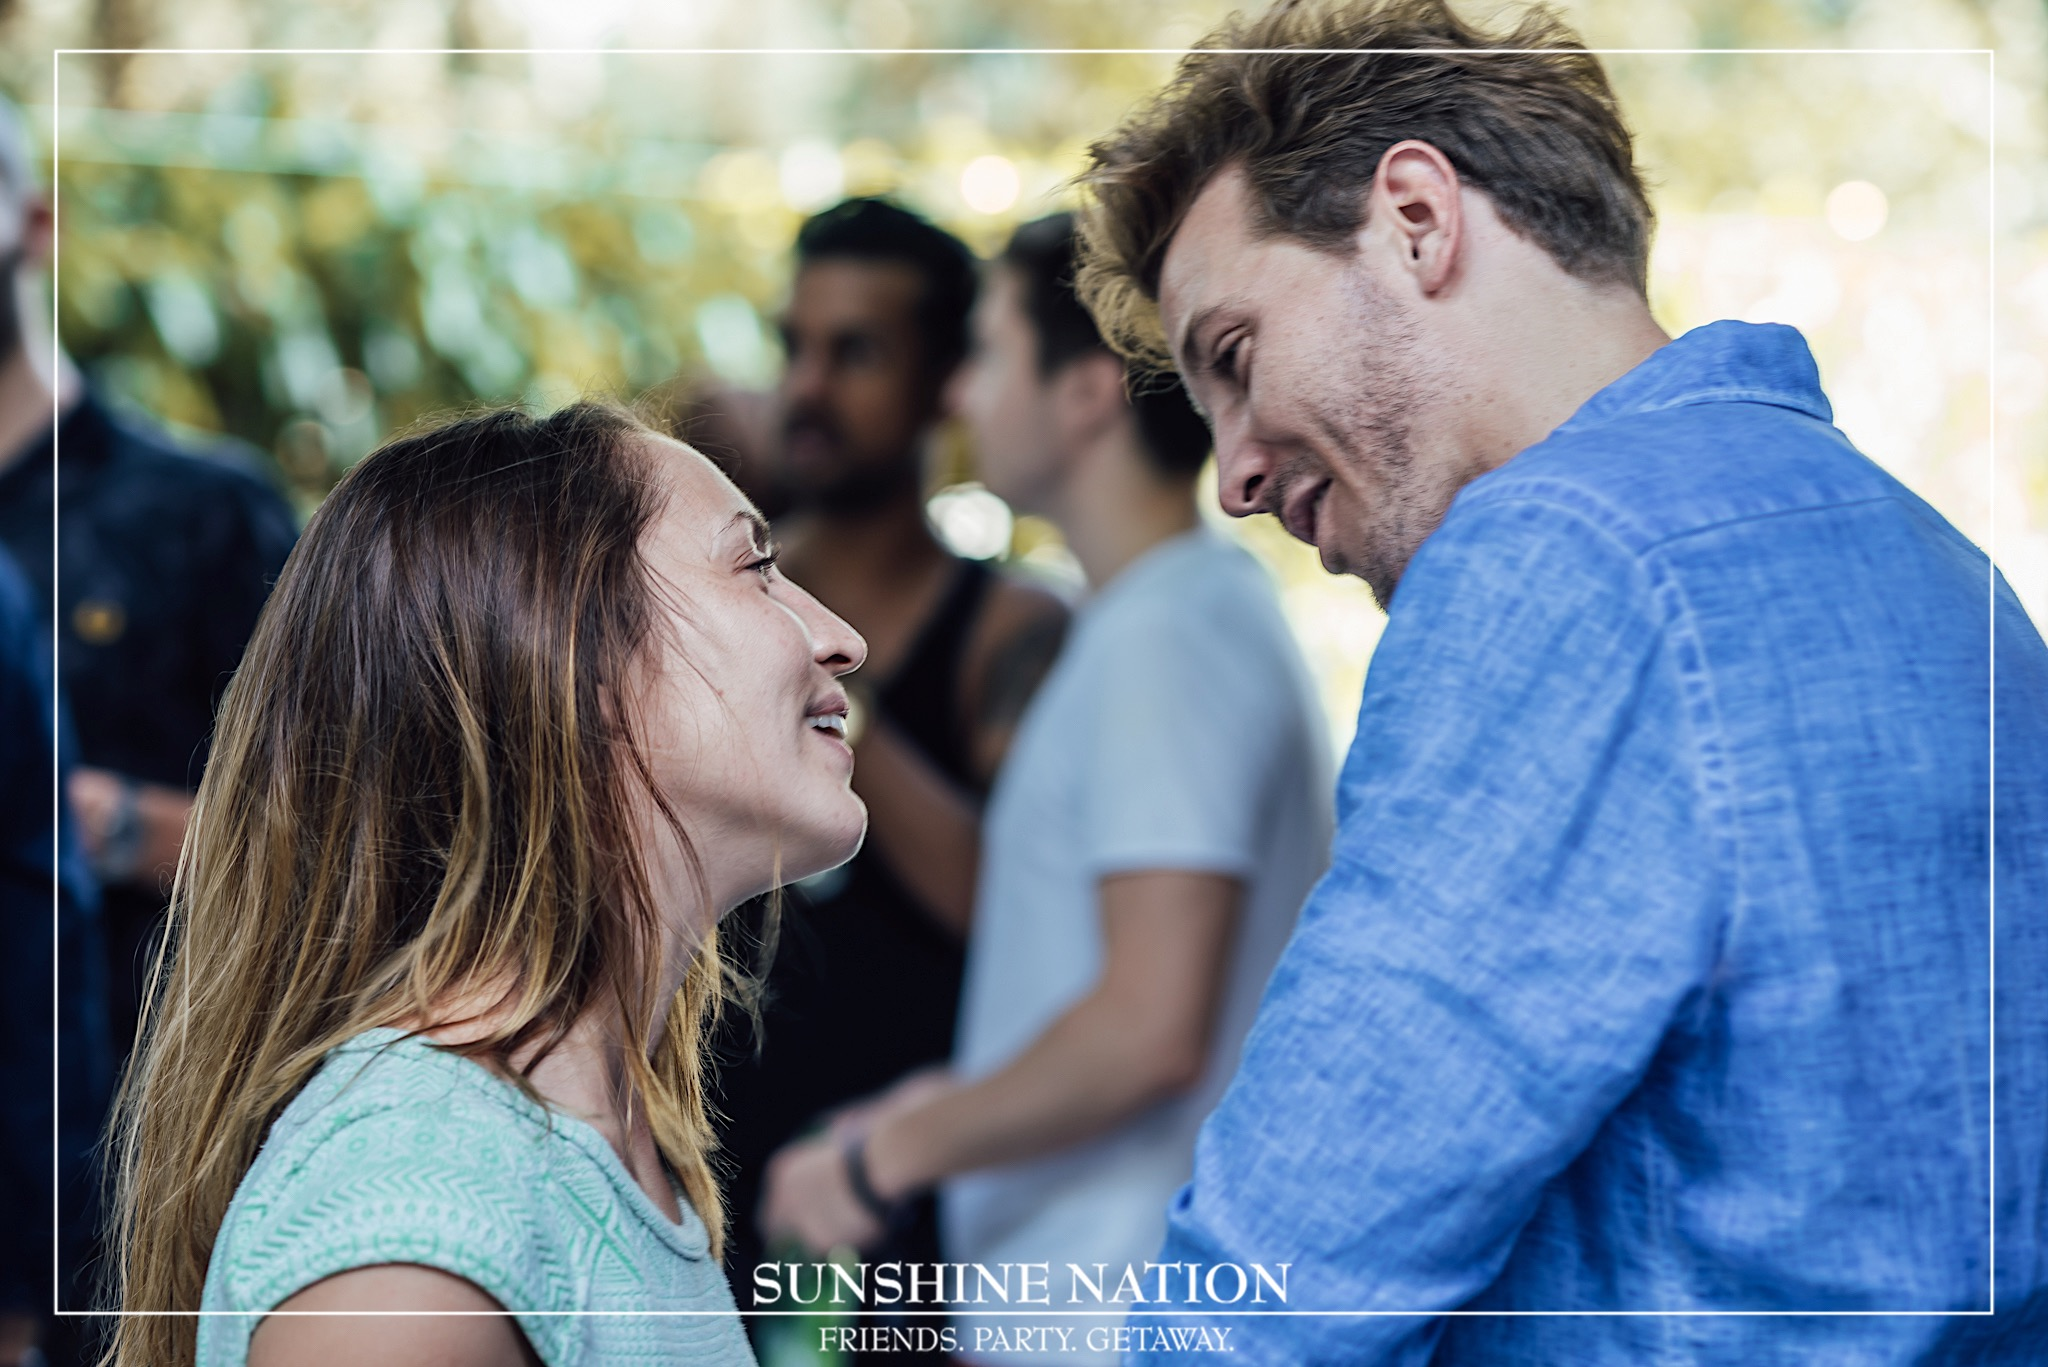 18092016_SunshineNation_Colossal087_Watermarked.jpg